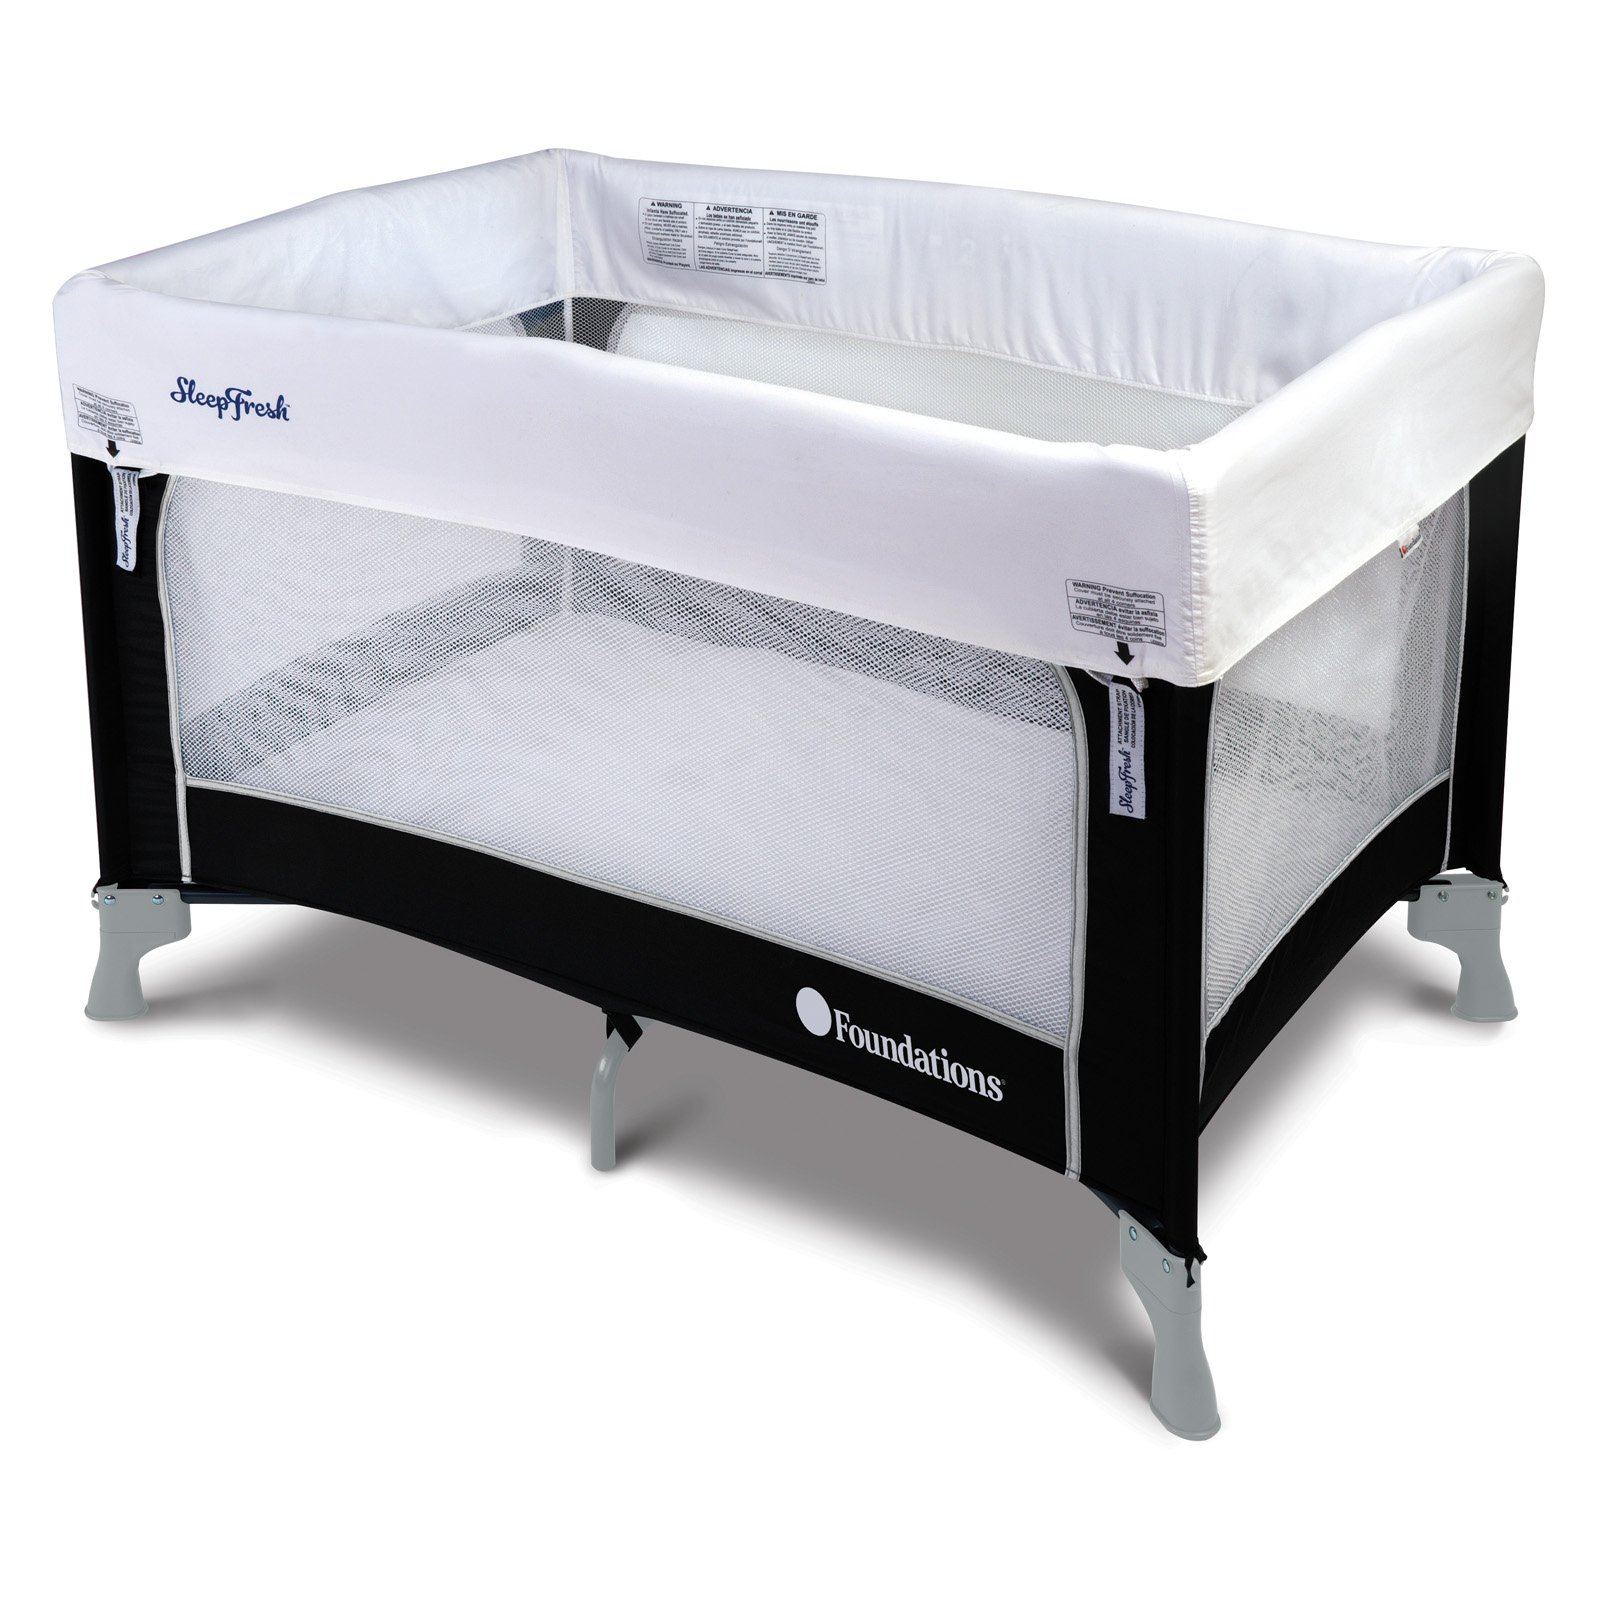 Foundations SleepFresh Celebrity Portable Crib by Foundations